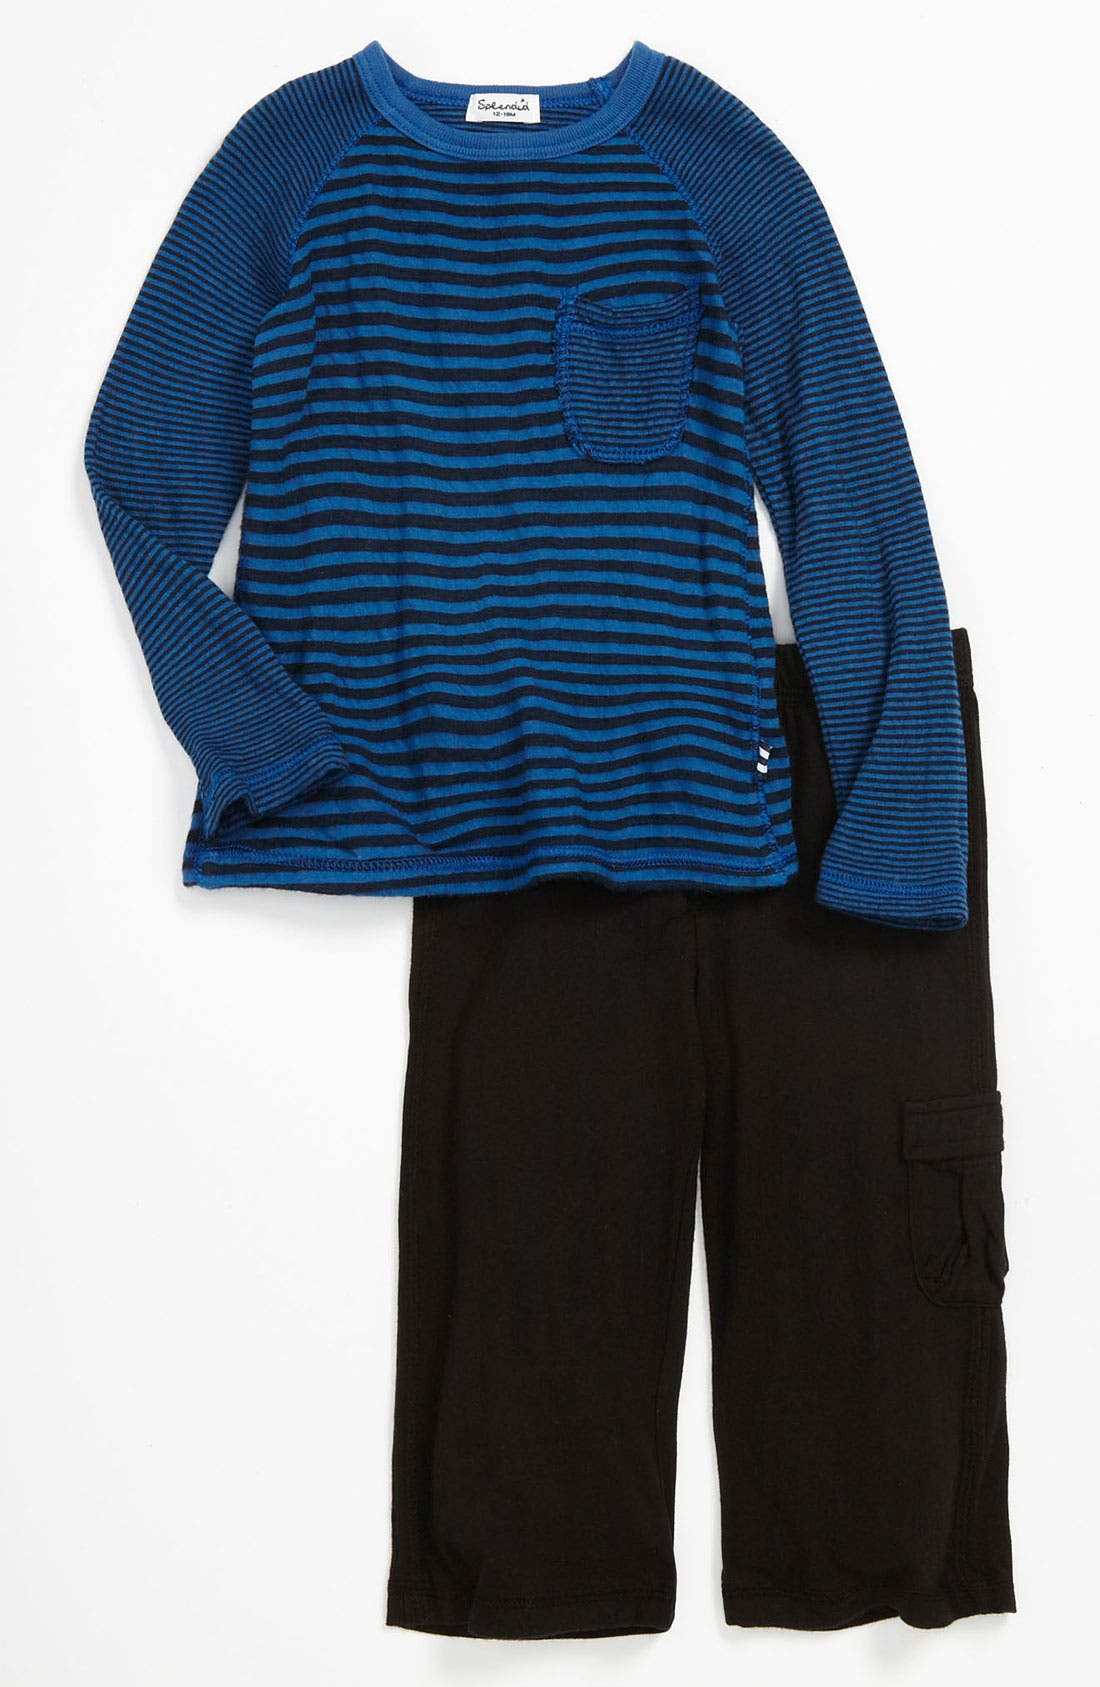 Alternate Image 1 Selected - Splendid Stripe Top & Pants (Infant)